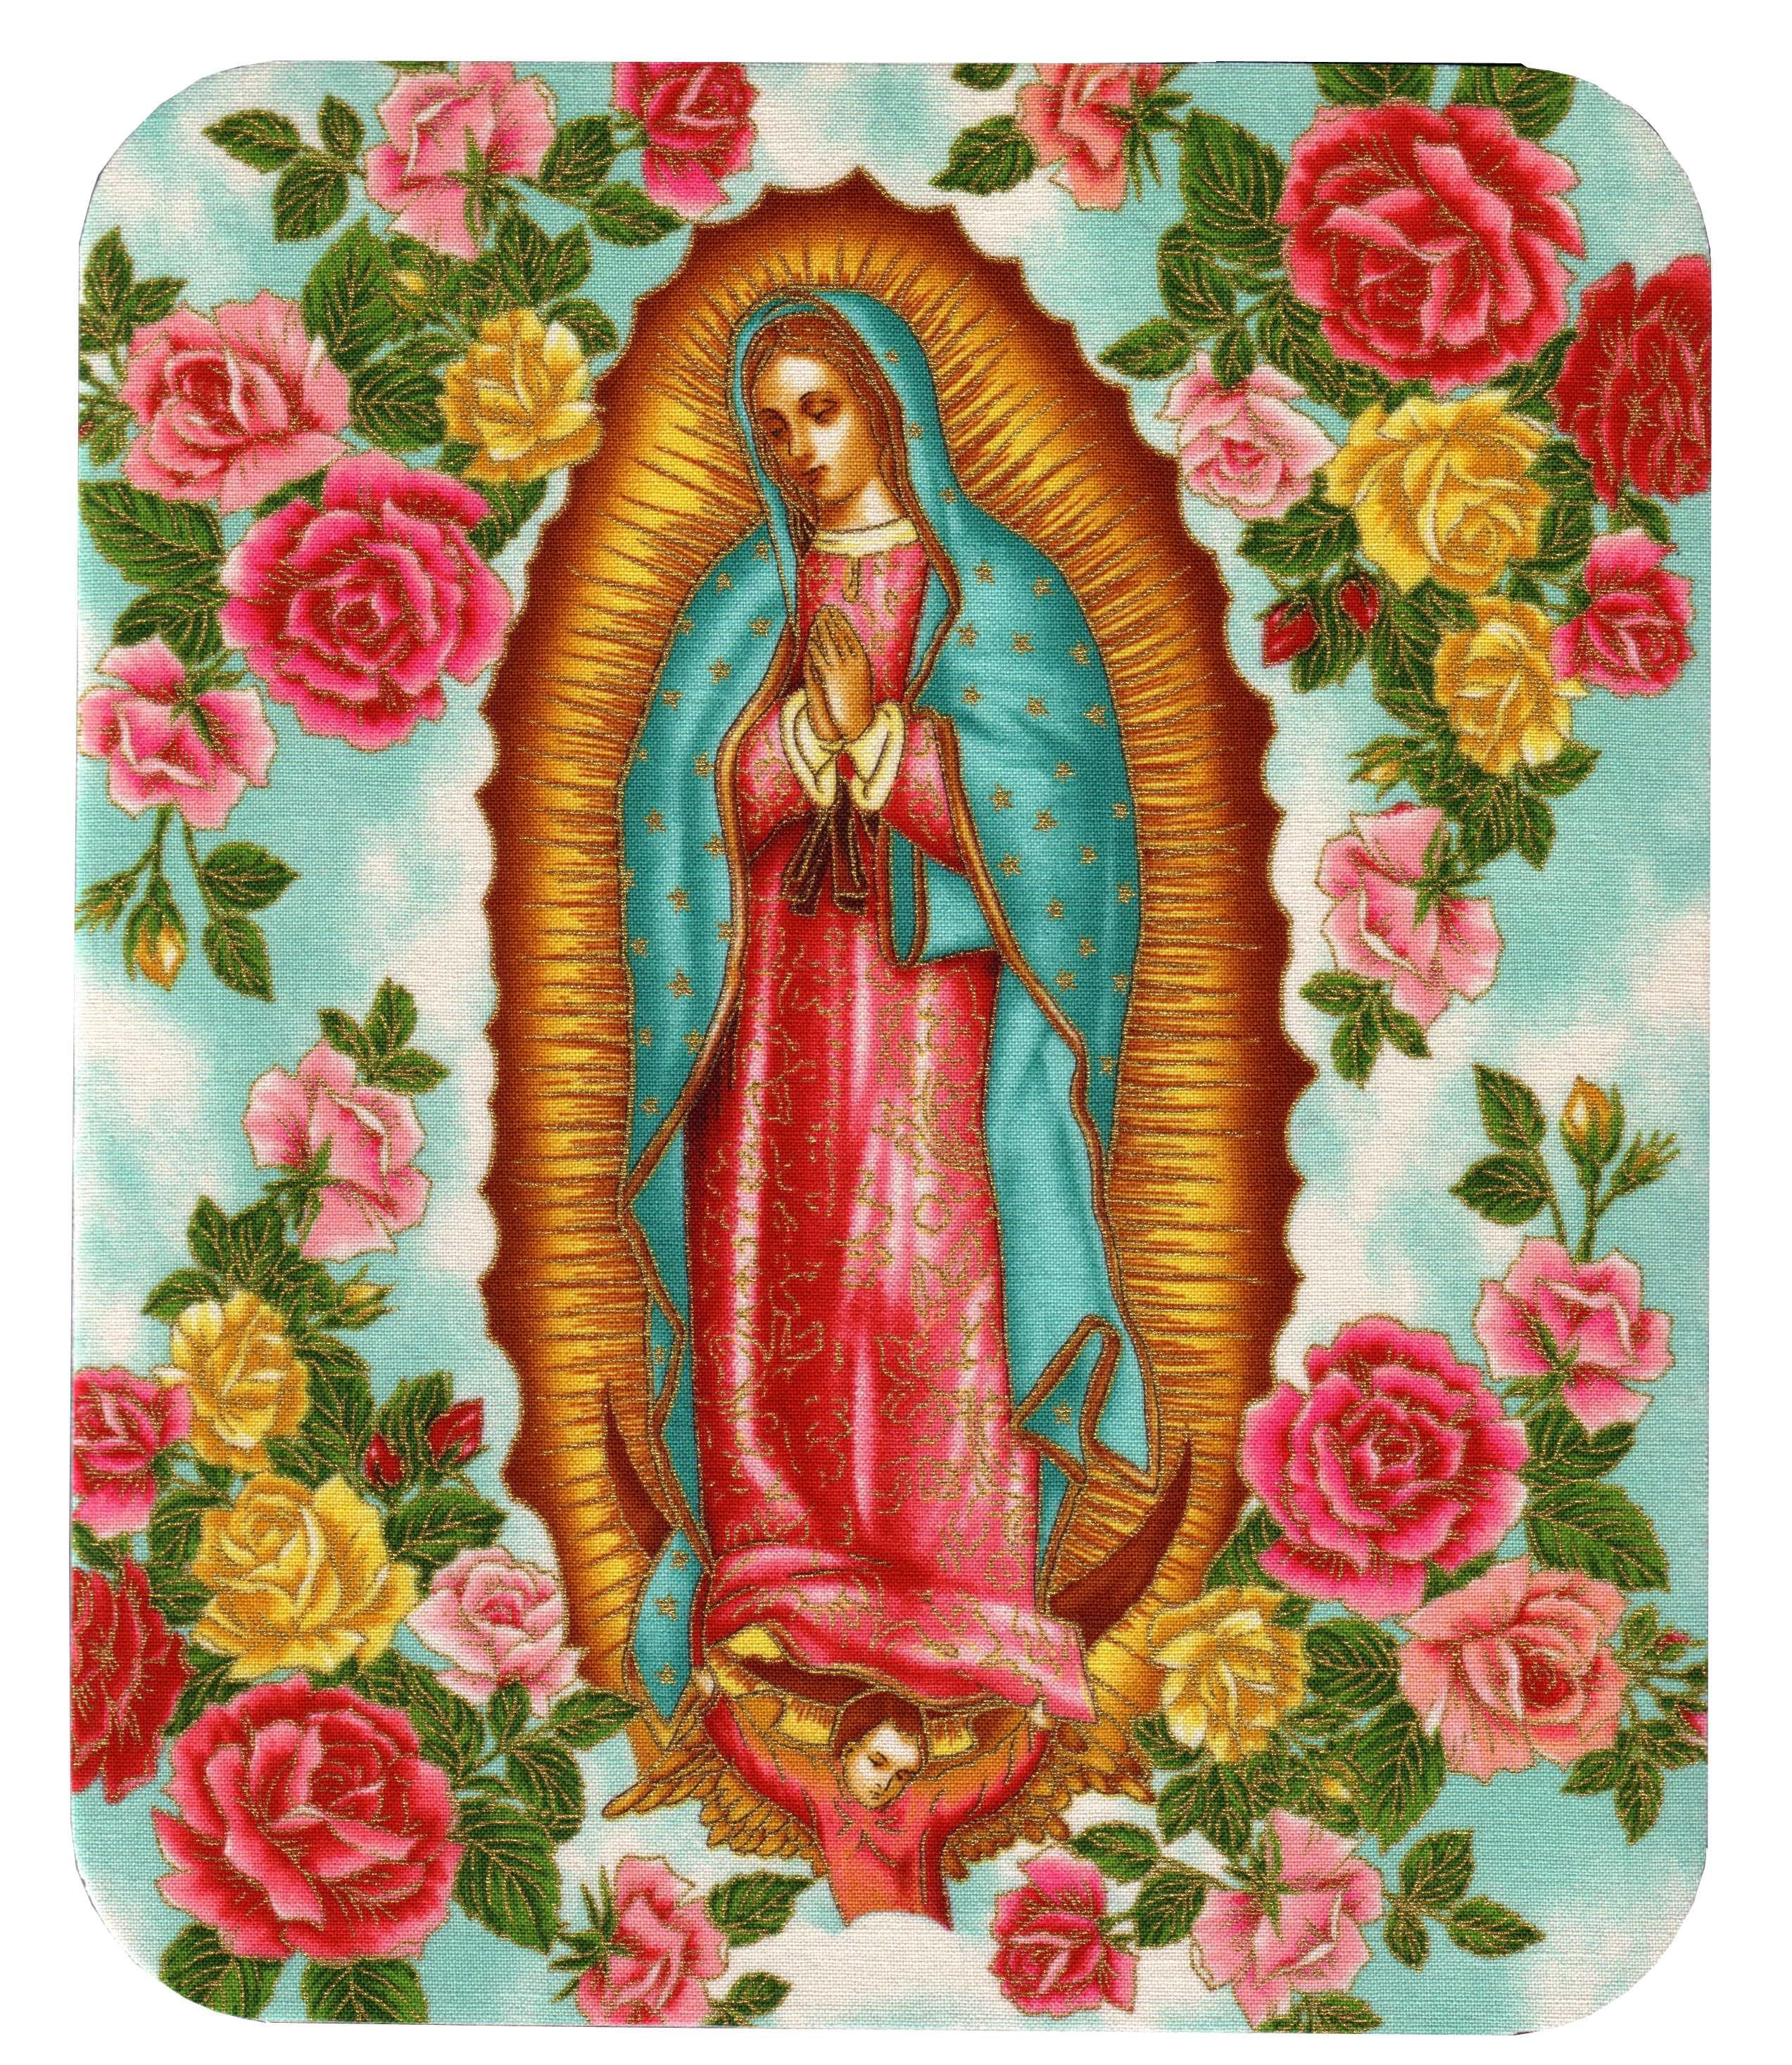 #Virgin Mary #Guadalupe